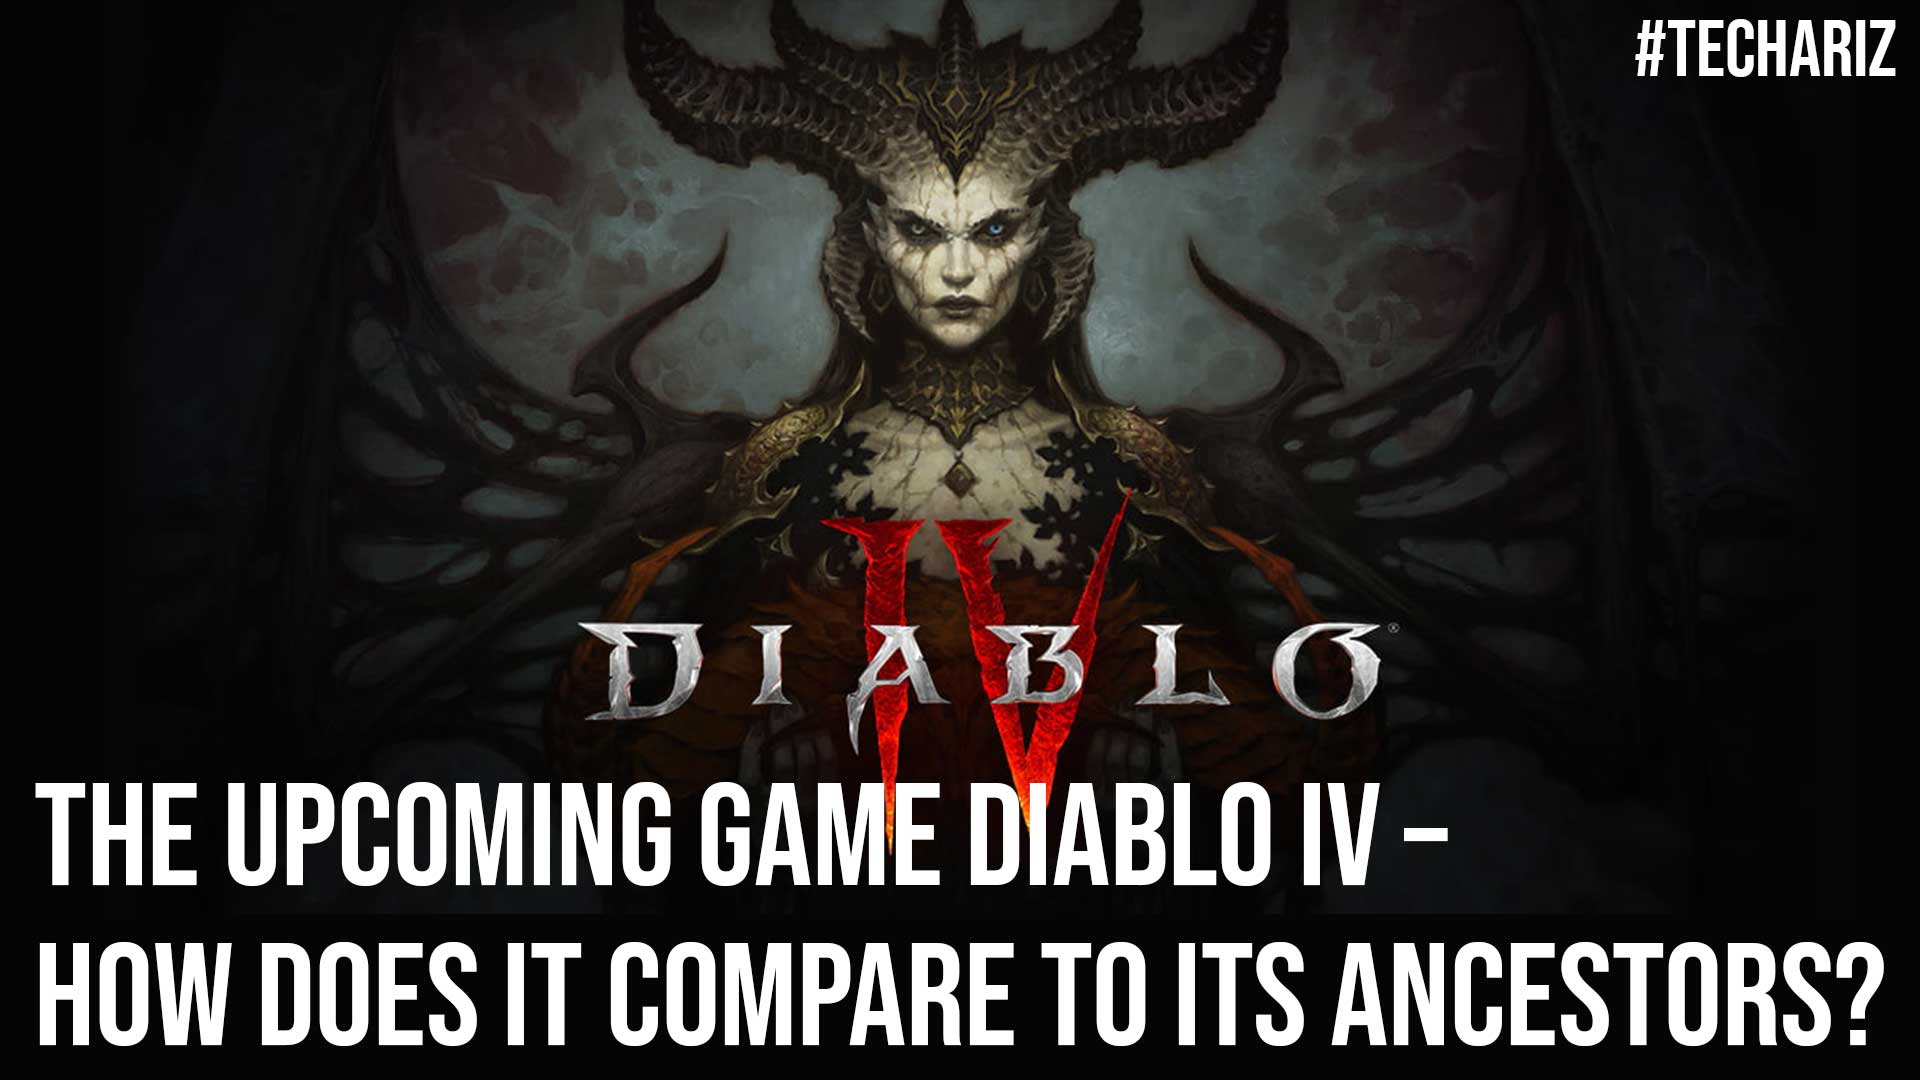 The Upcoming Game Diablo IV How Does IT Compare to Its Ancestors